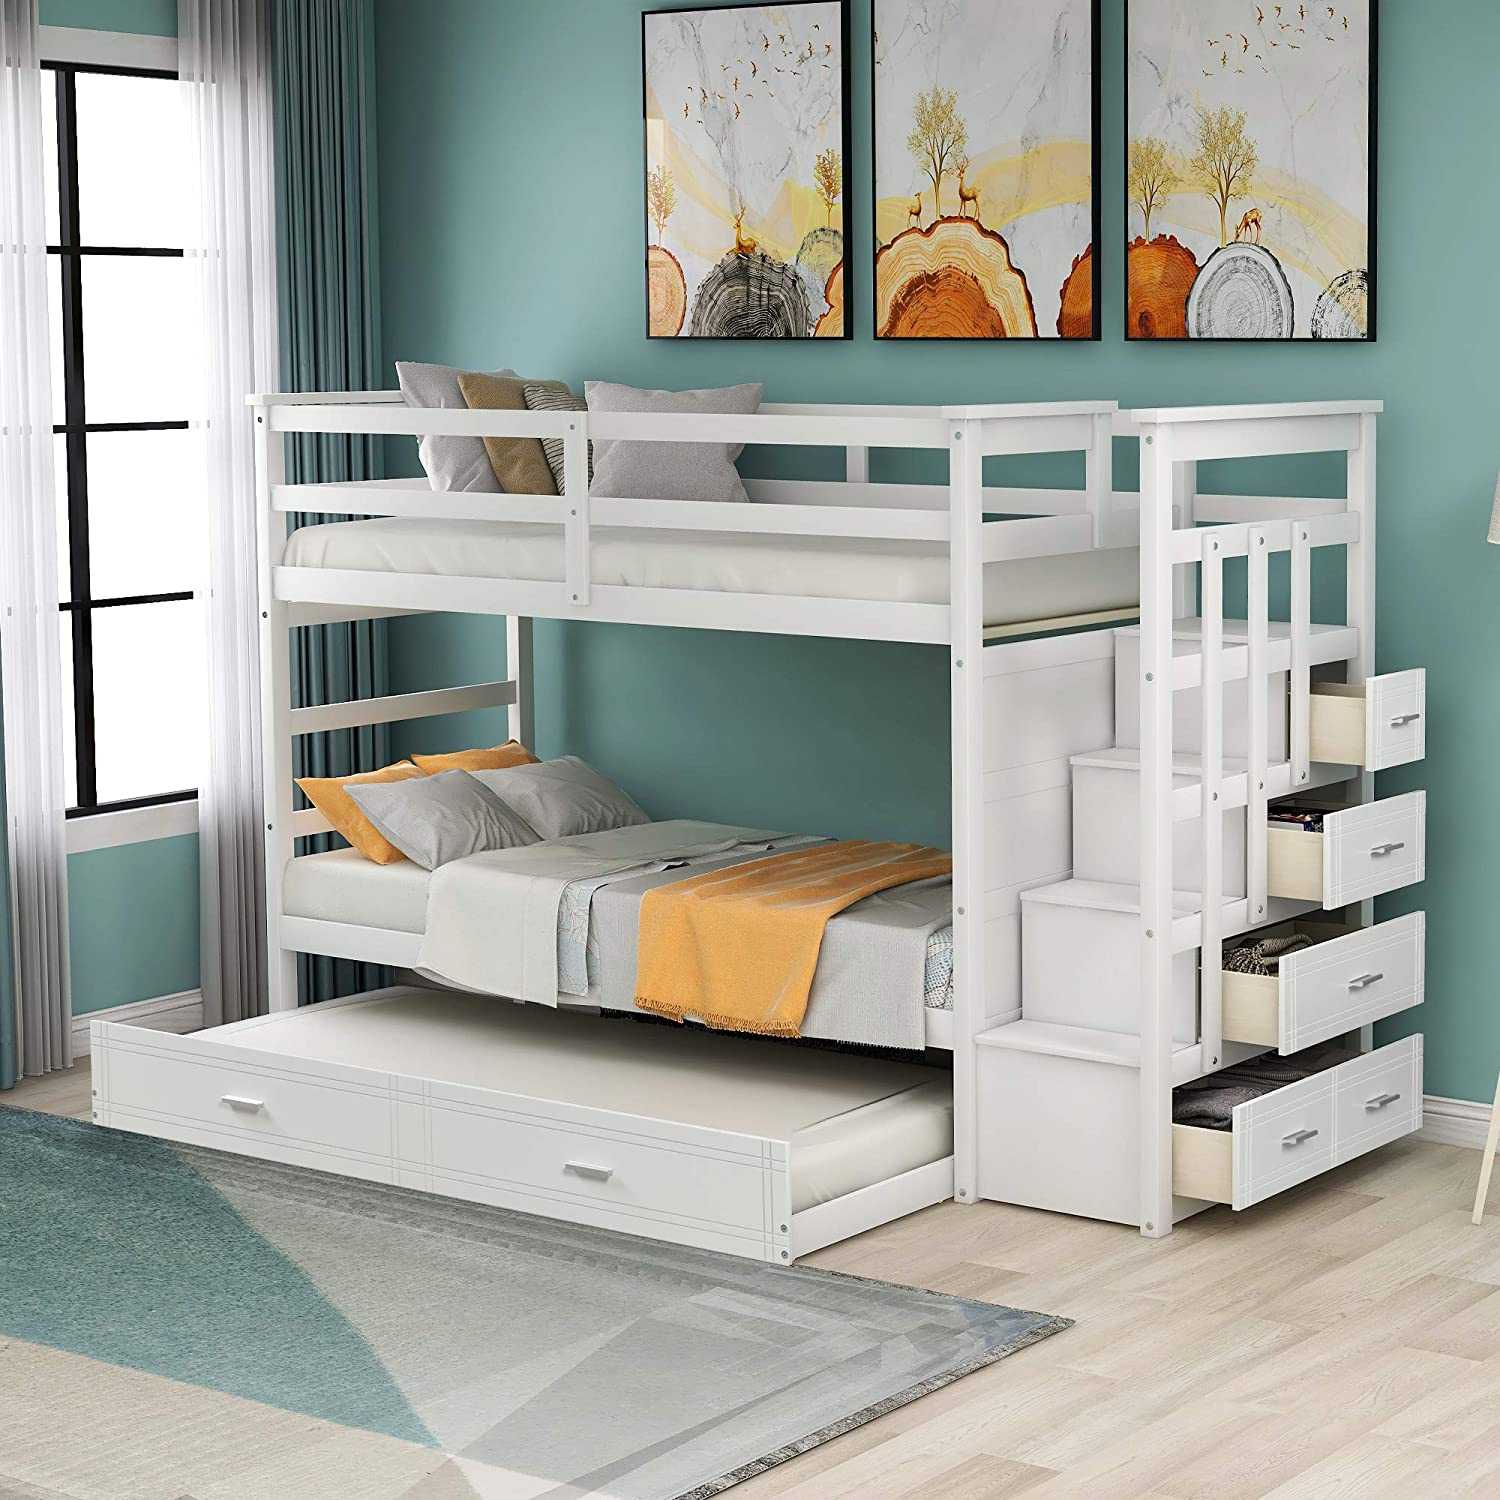 AUTOKOLA Home Twin Over Bunk Weekly update Staircase Trundle Spring new work and Bed with